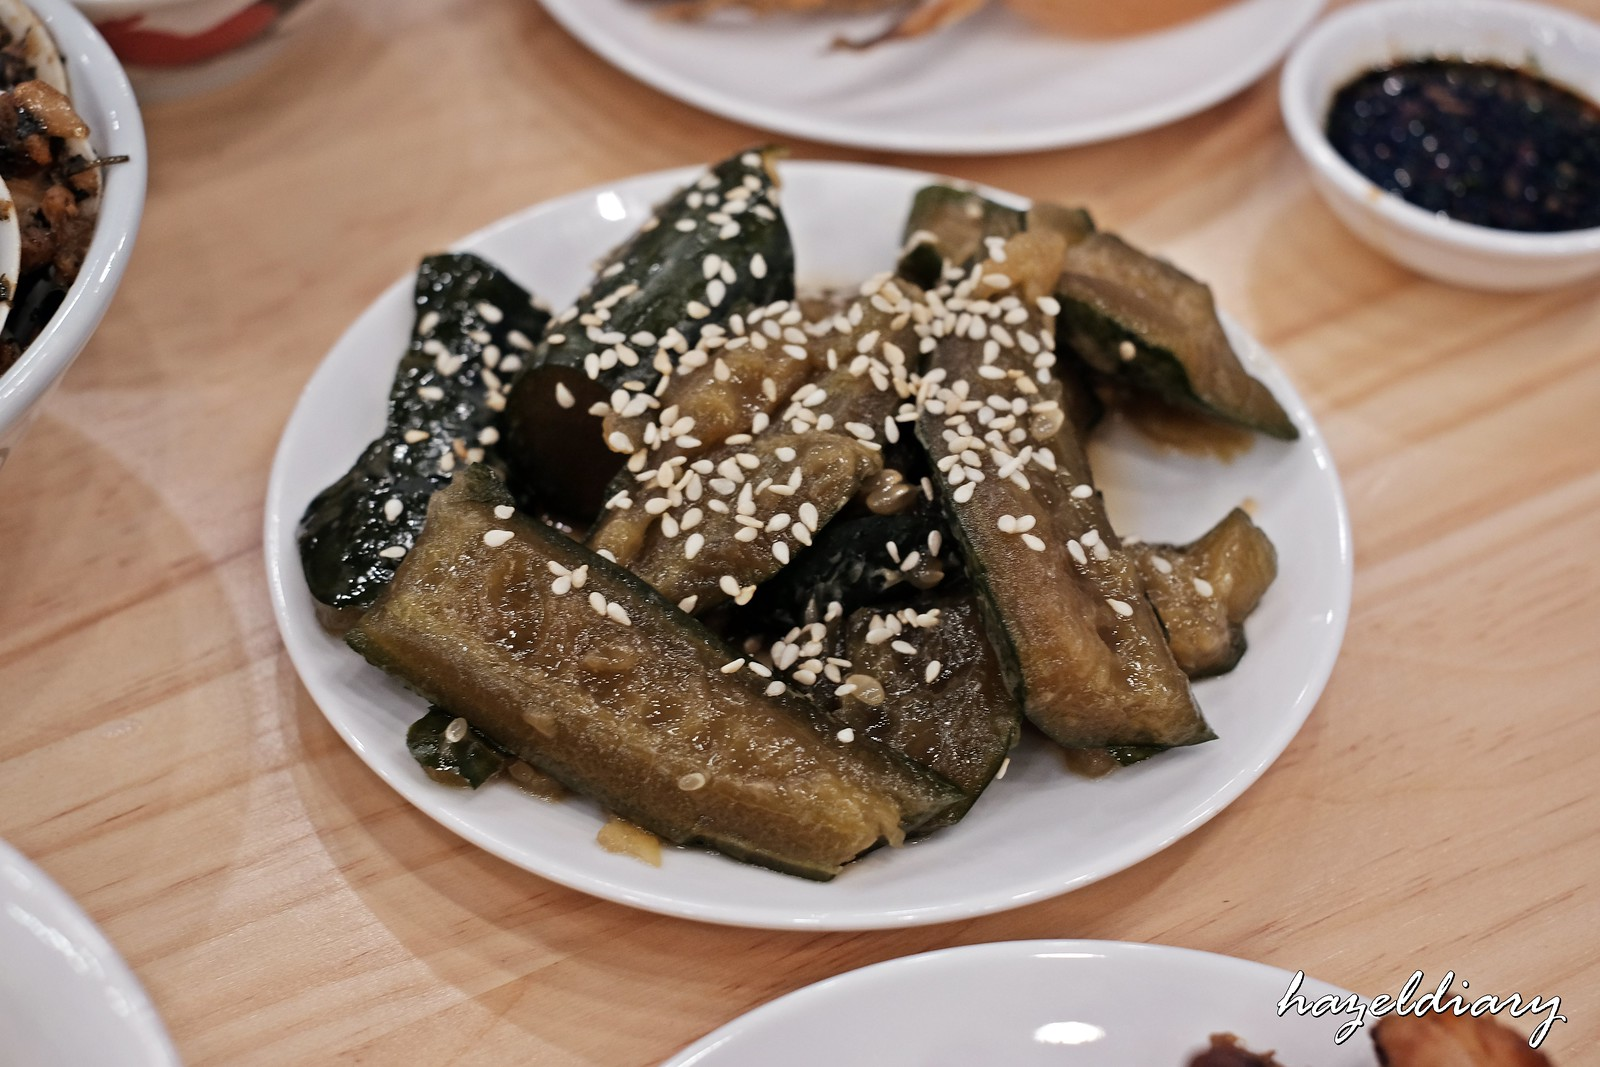 The Salted Plum-Braised cucumber